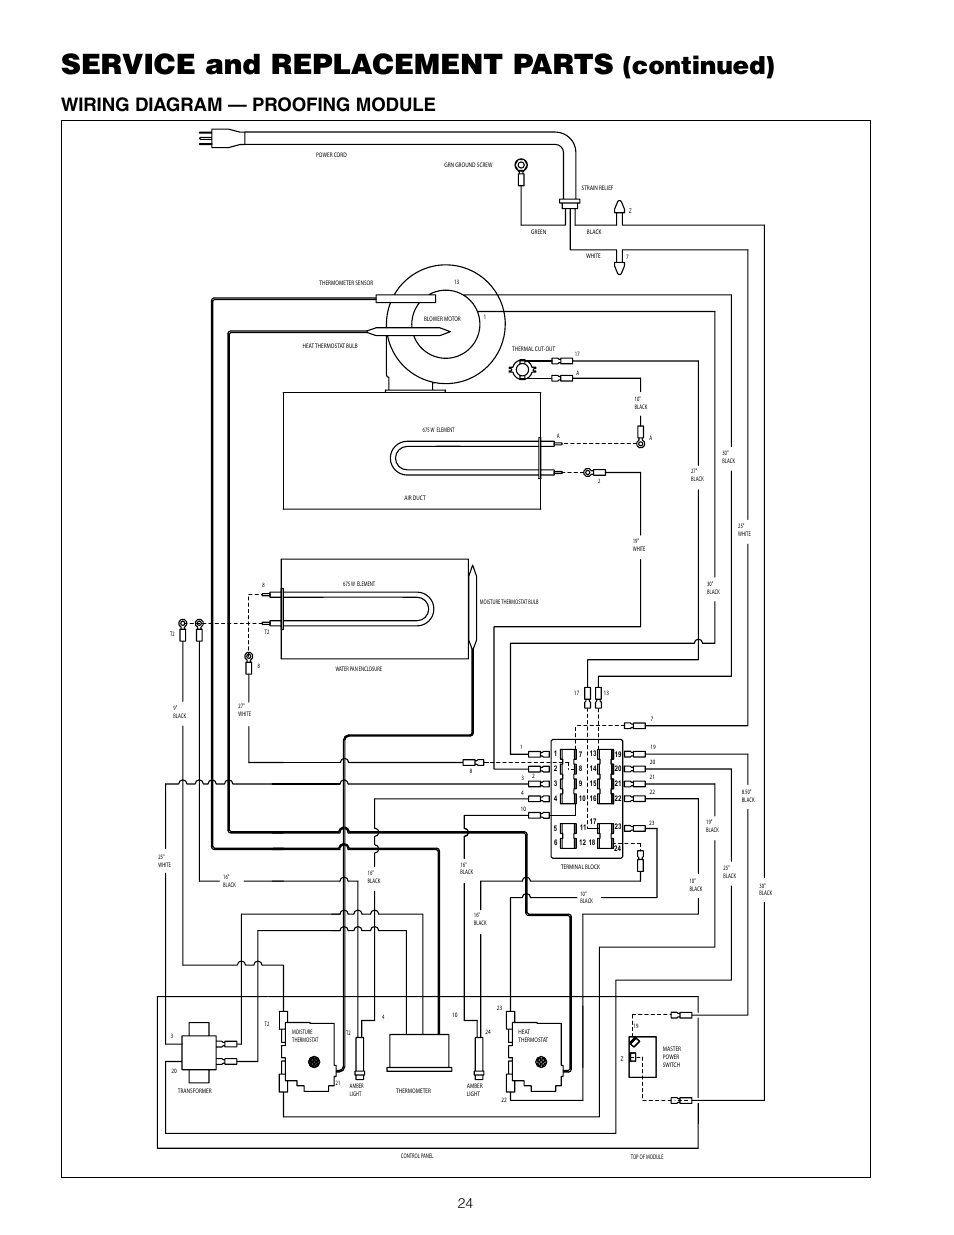 Metro C5 Wiring Diagram For Free You Ca18det Service And Replacement Parts Continued Proofing Rh Manualsdir Com T8